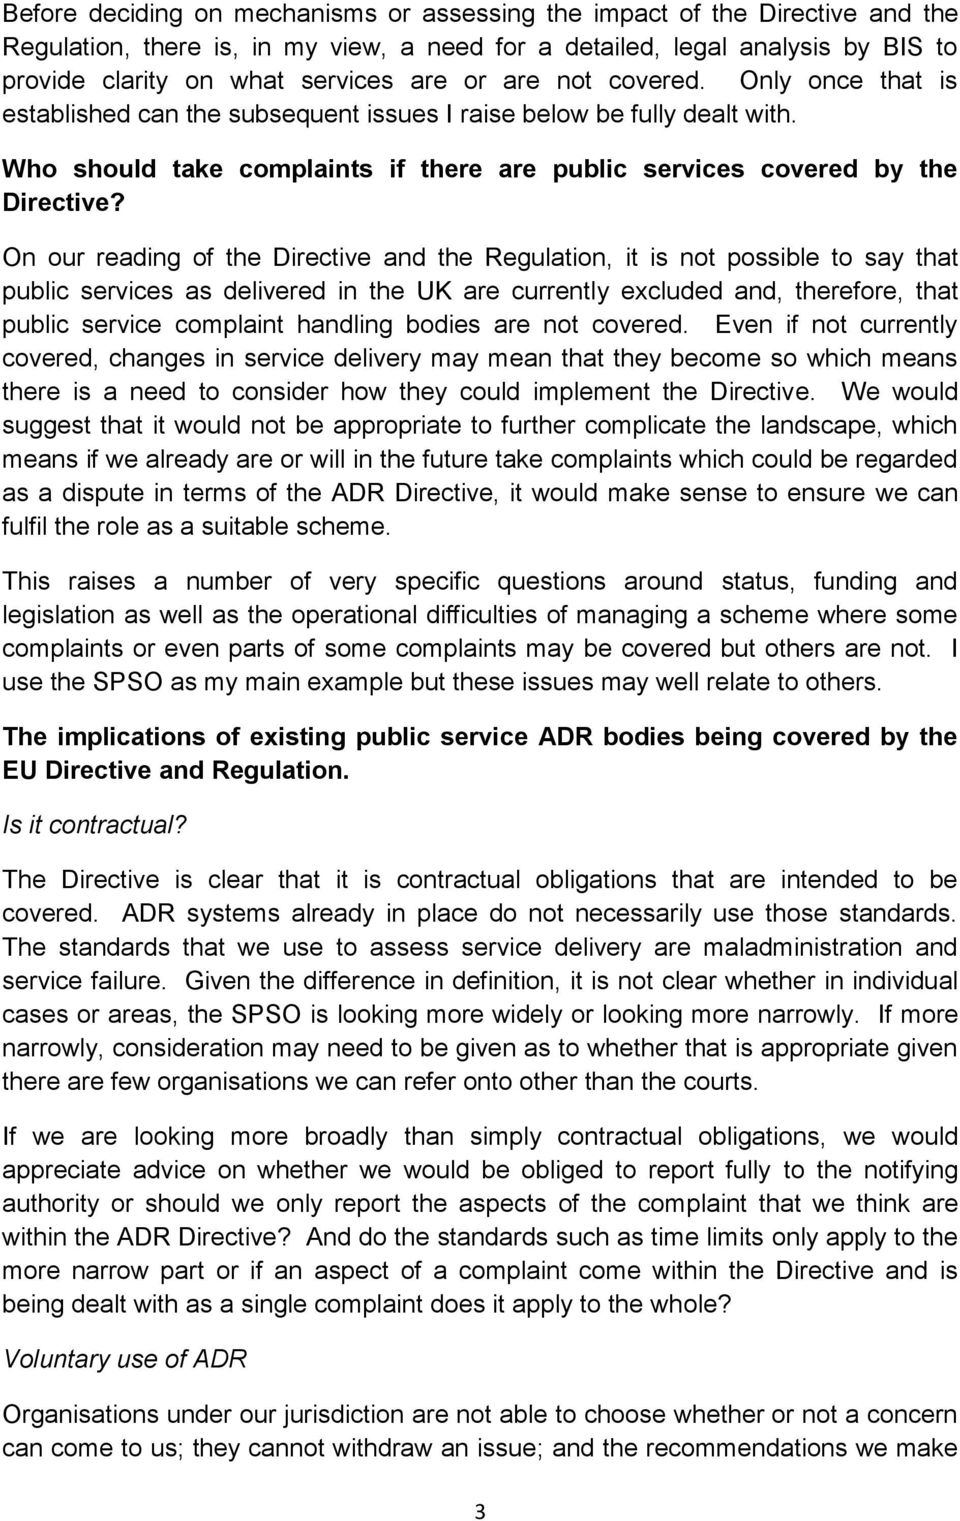 On our reading of the Directive and the Regulation, it is not possible to say that public services as delivered in the UK are currently excluded and, therefore, that public service complaint handling